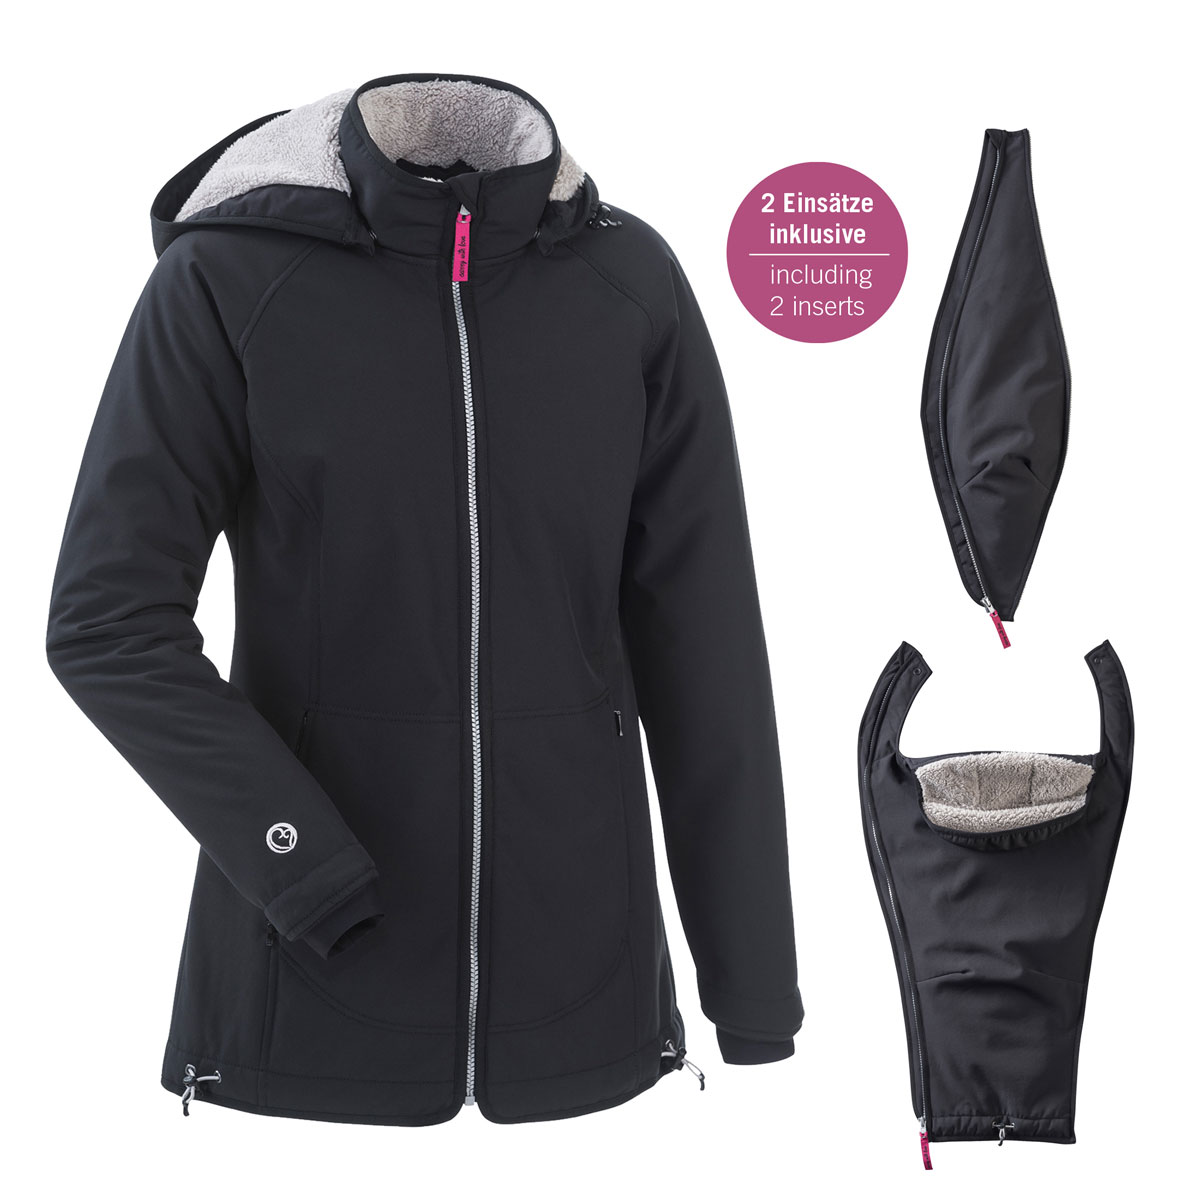 Allwetter-Tragejacke Cosy Winter, Teddy-Fleece, mamalila